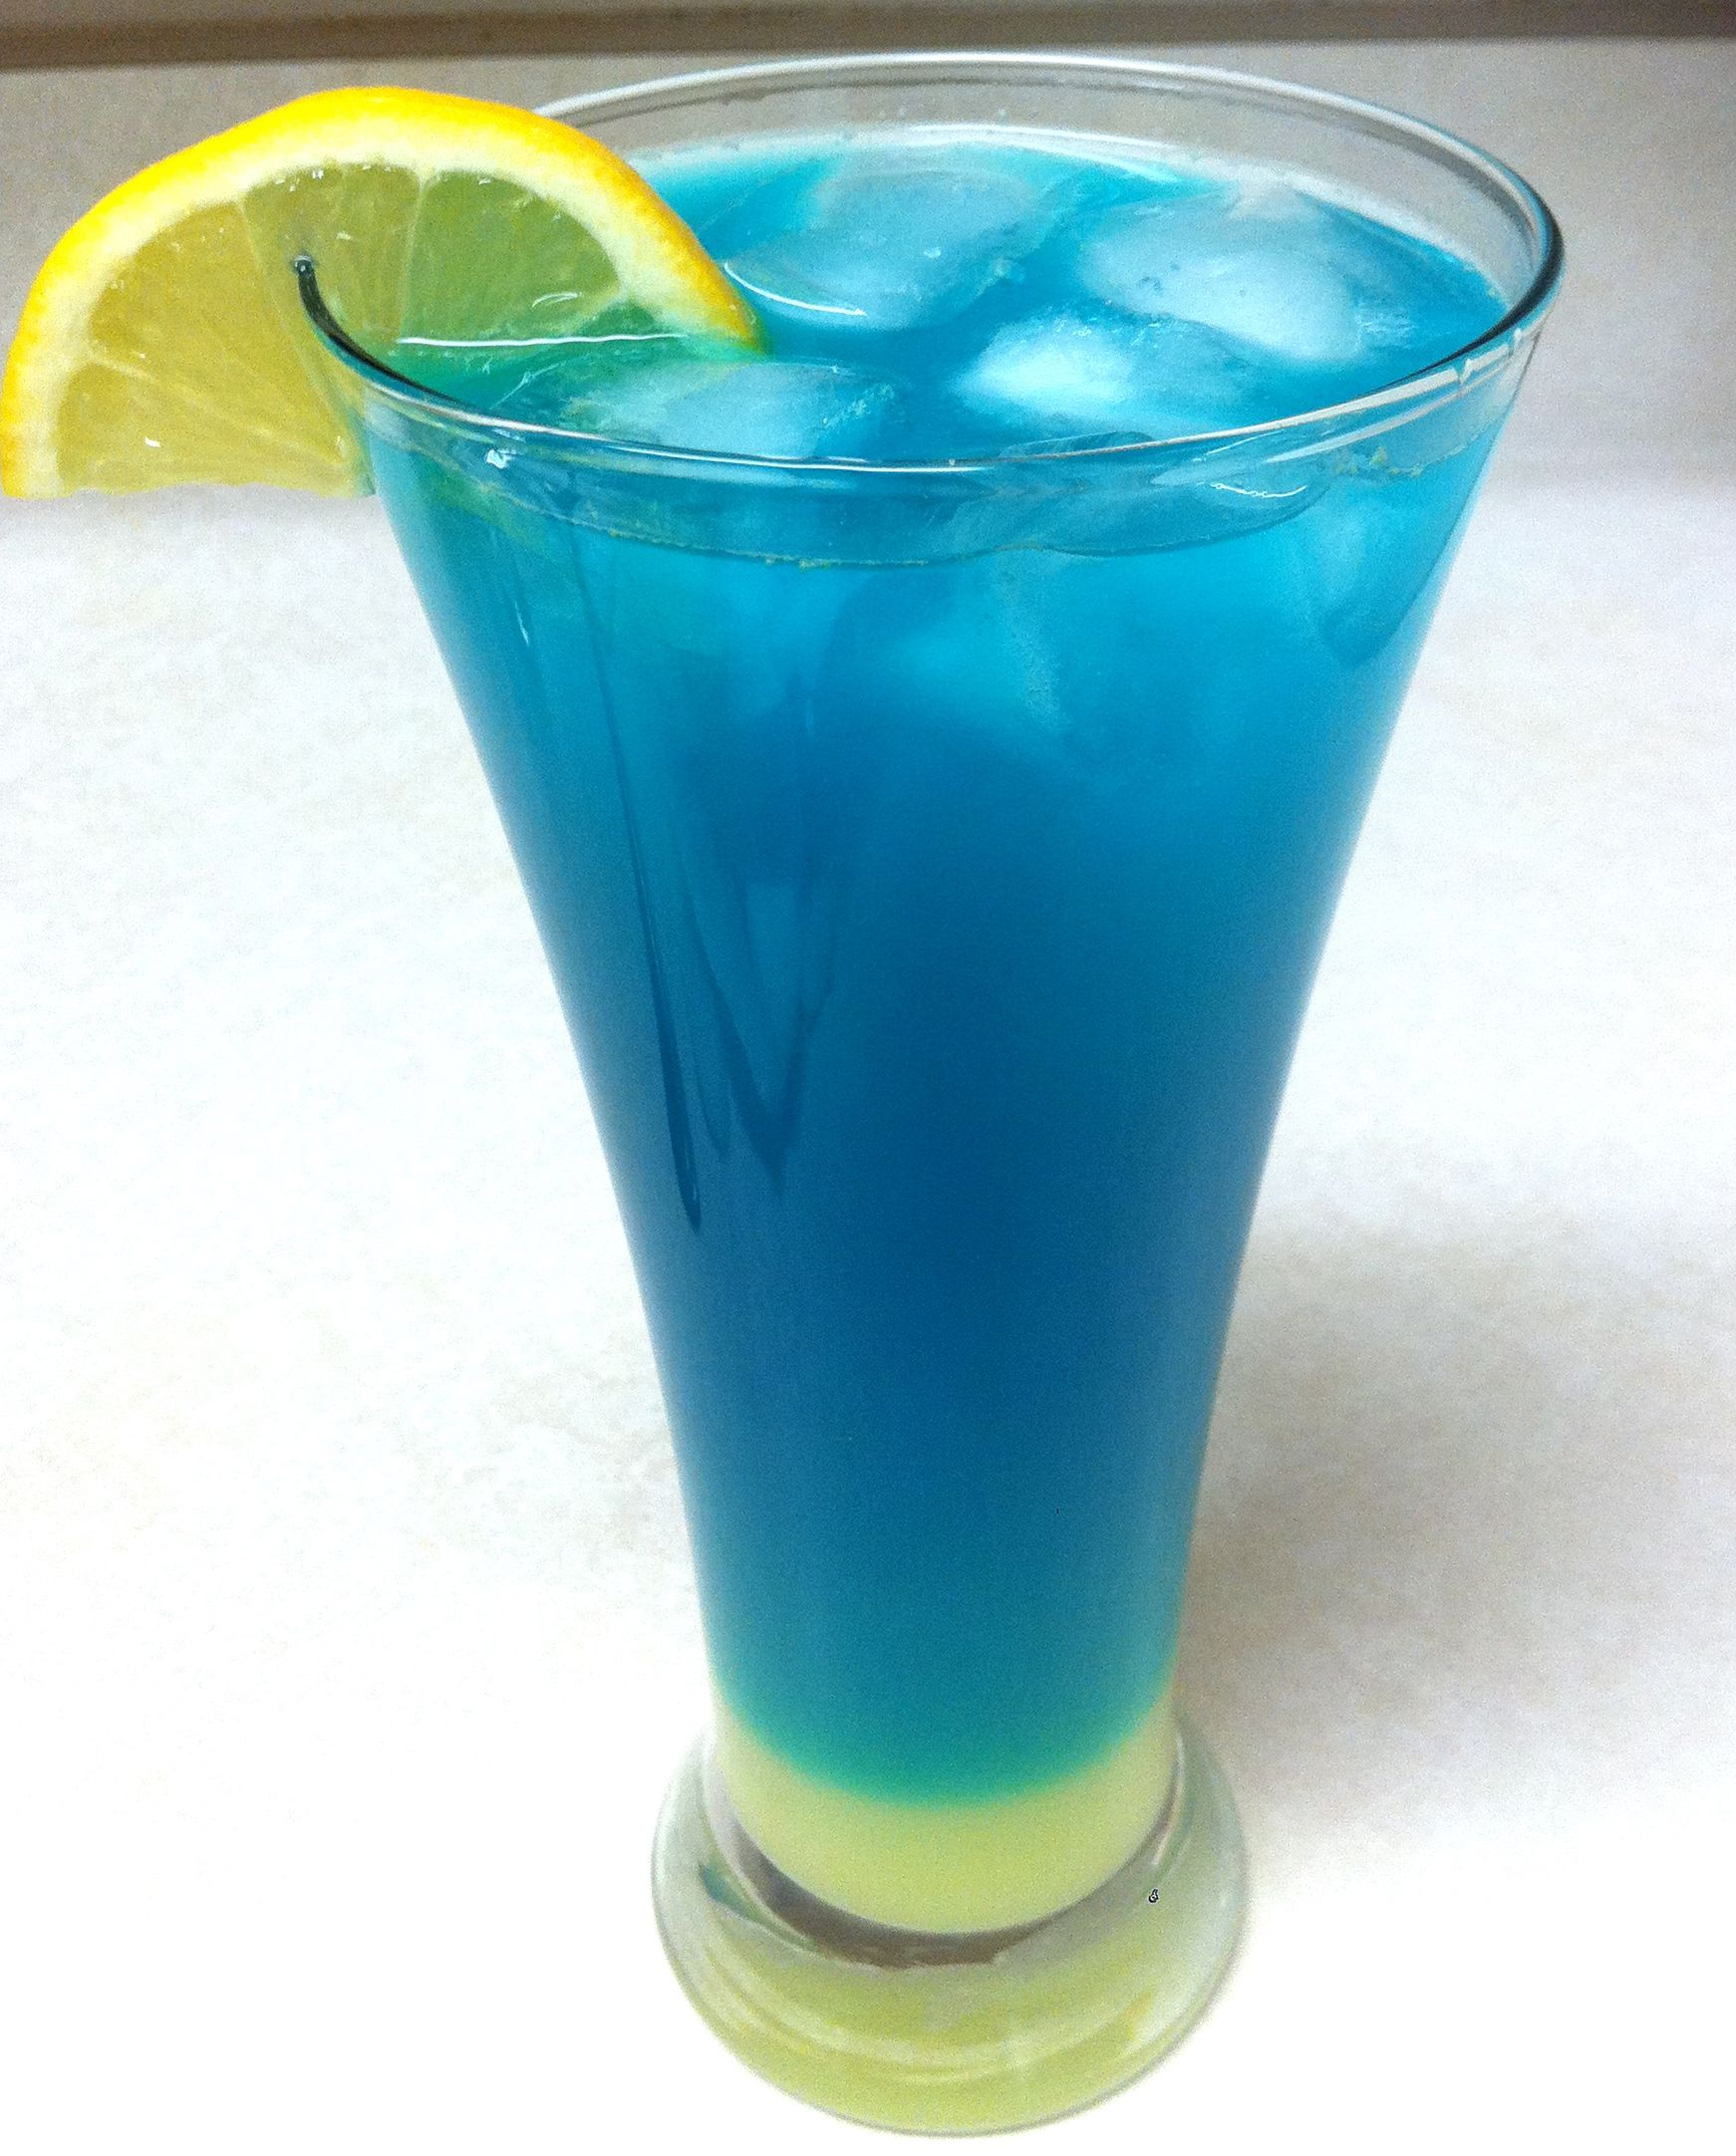 Blue Curacao Cocktail Alkoholfrei Blue Lemonade Fill Glass With Ice 1oz Citrus Vodka ¼ Oz Blue